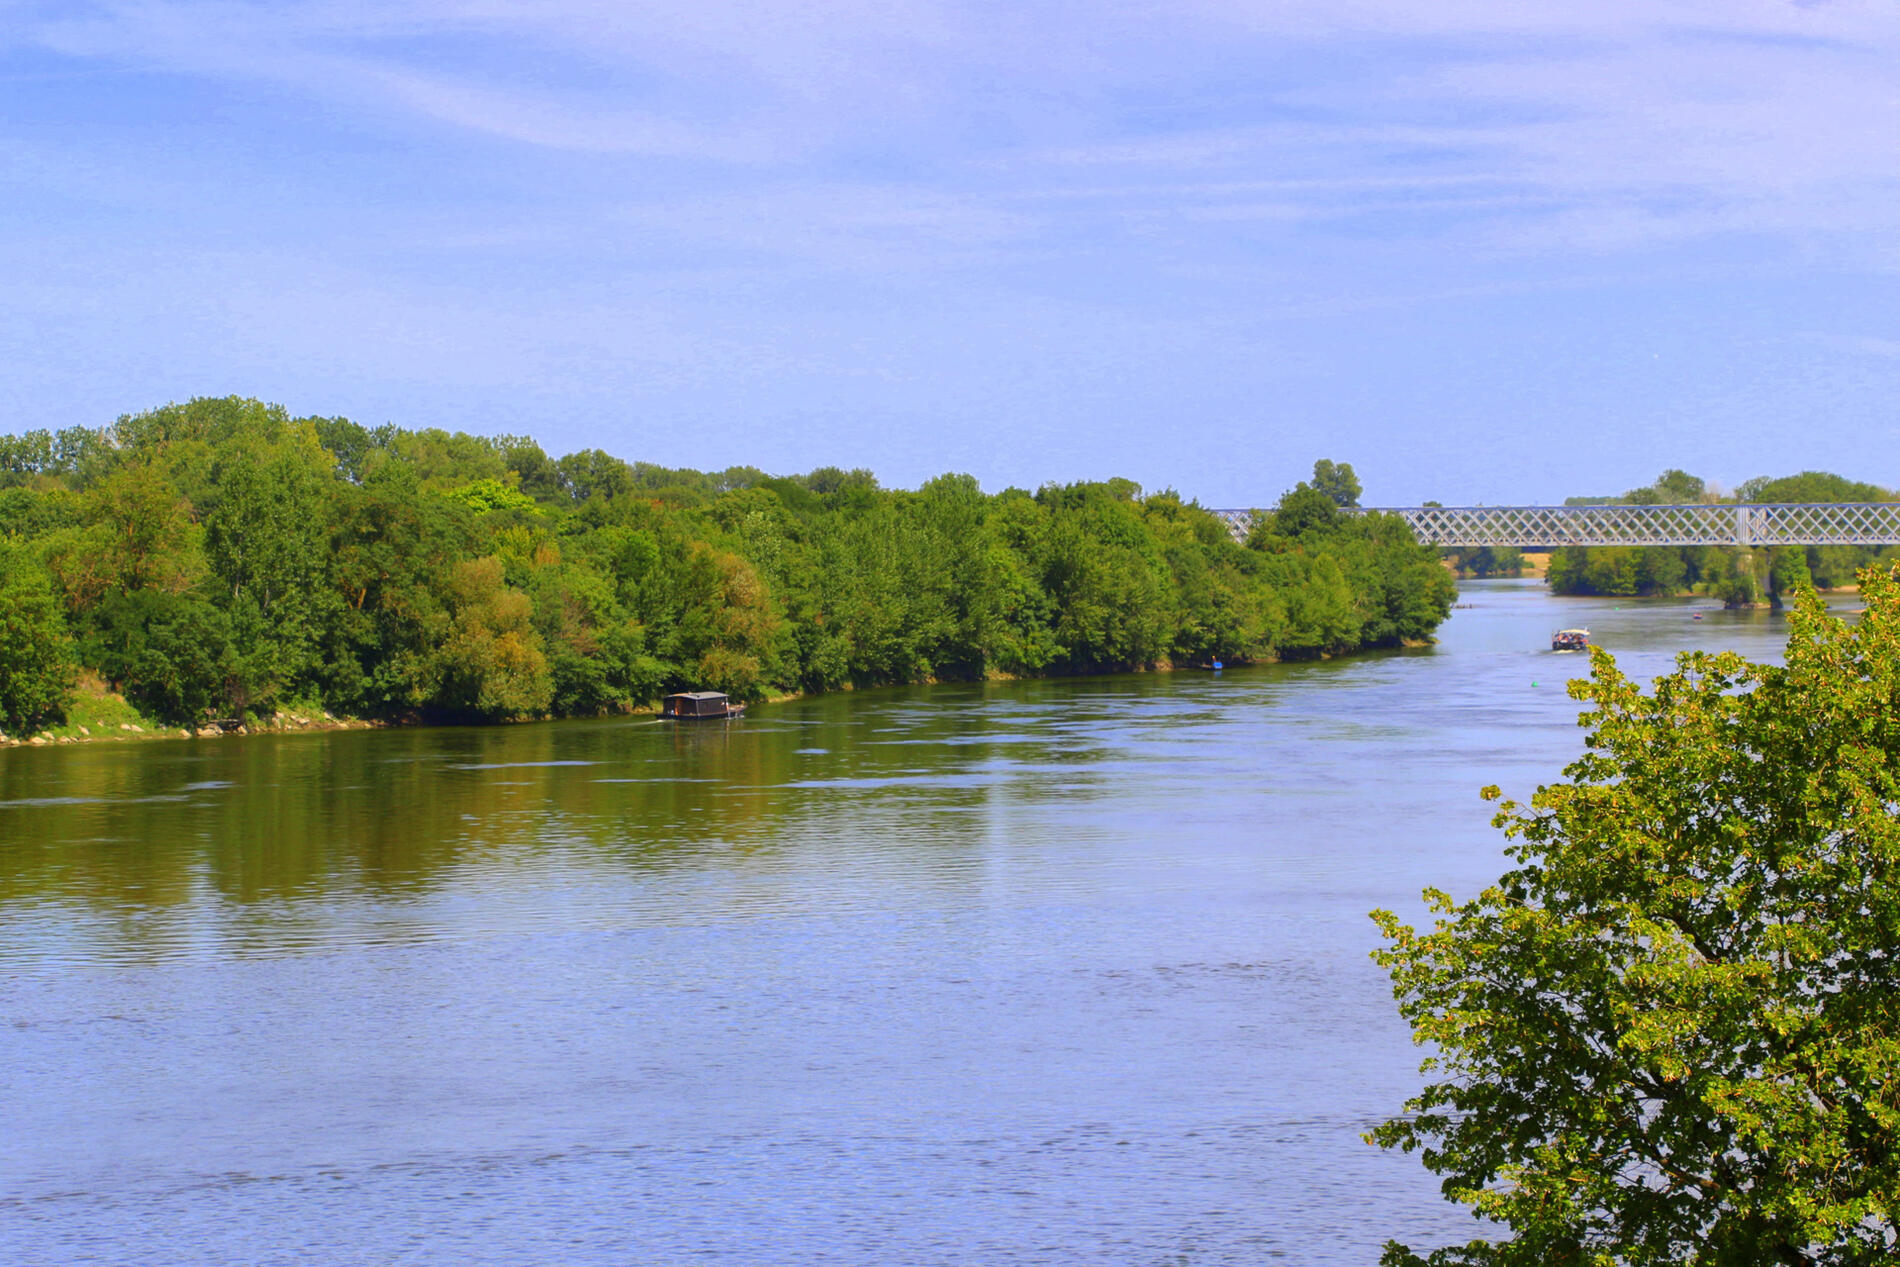 Attractions near Hotel Anne d'Anjou in Saumur, France